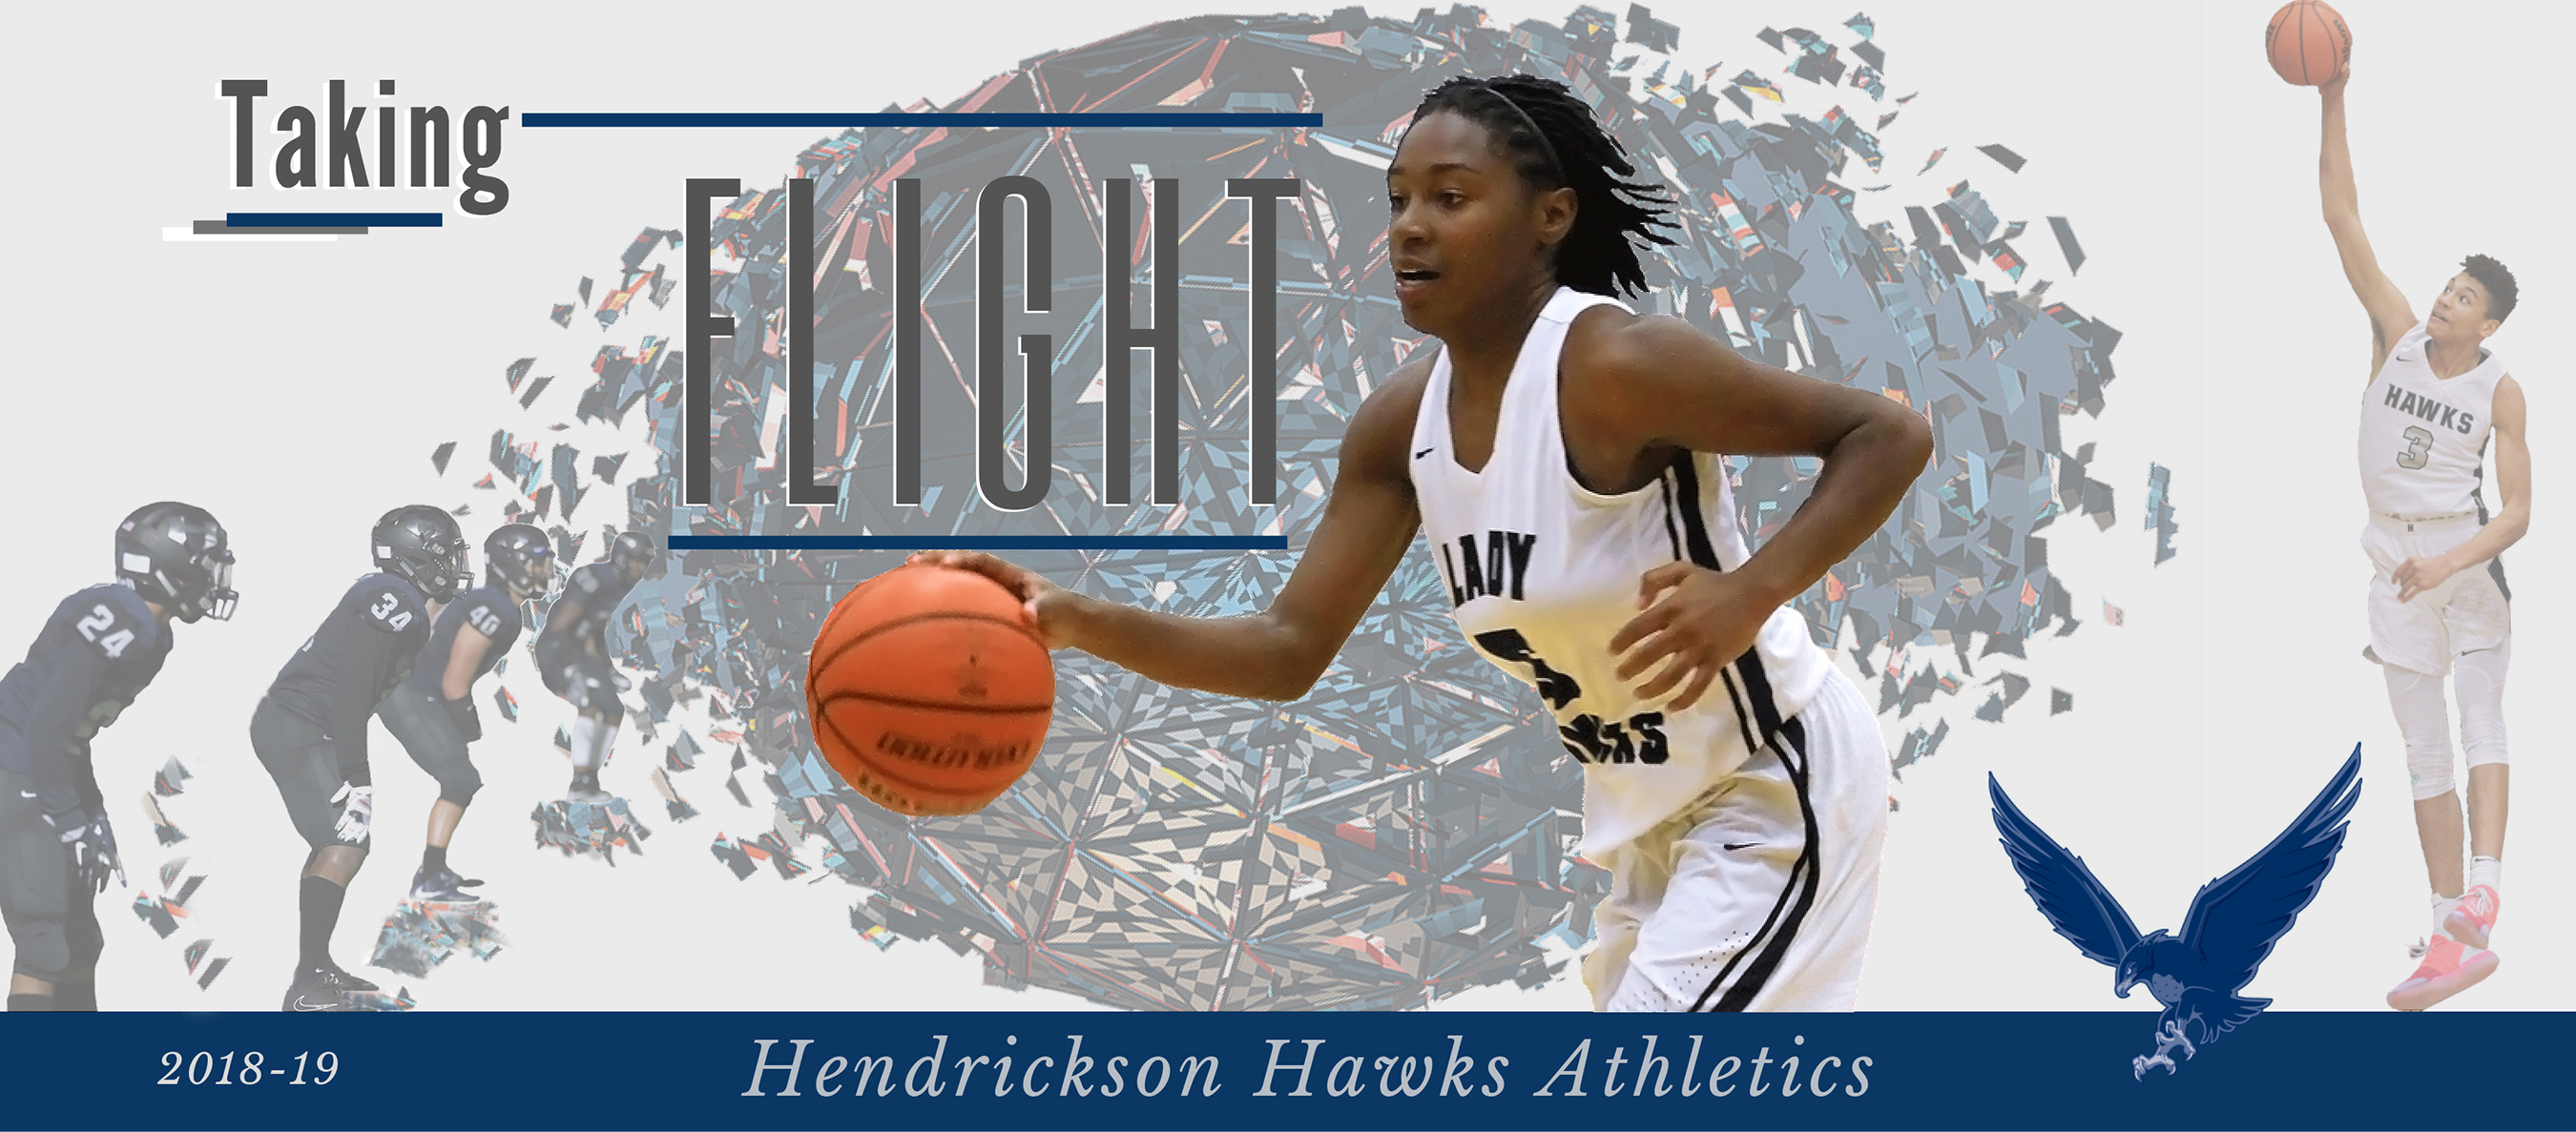 Hendrickson High School Athletics